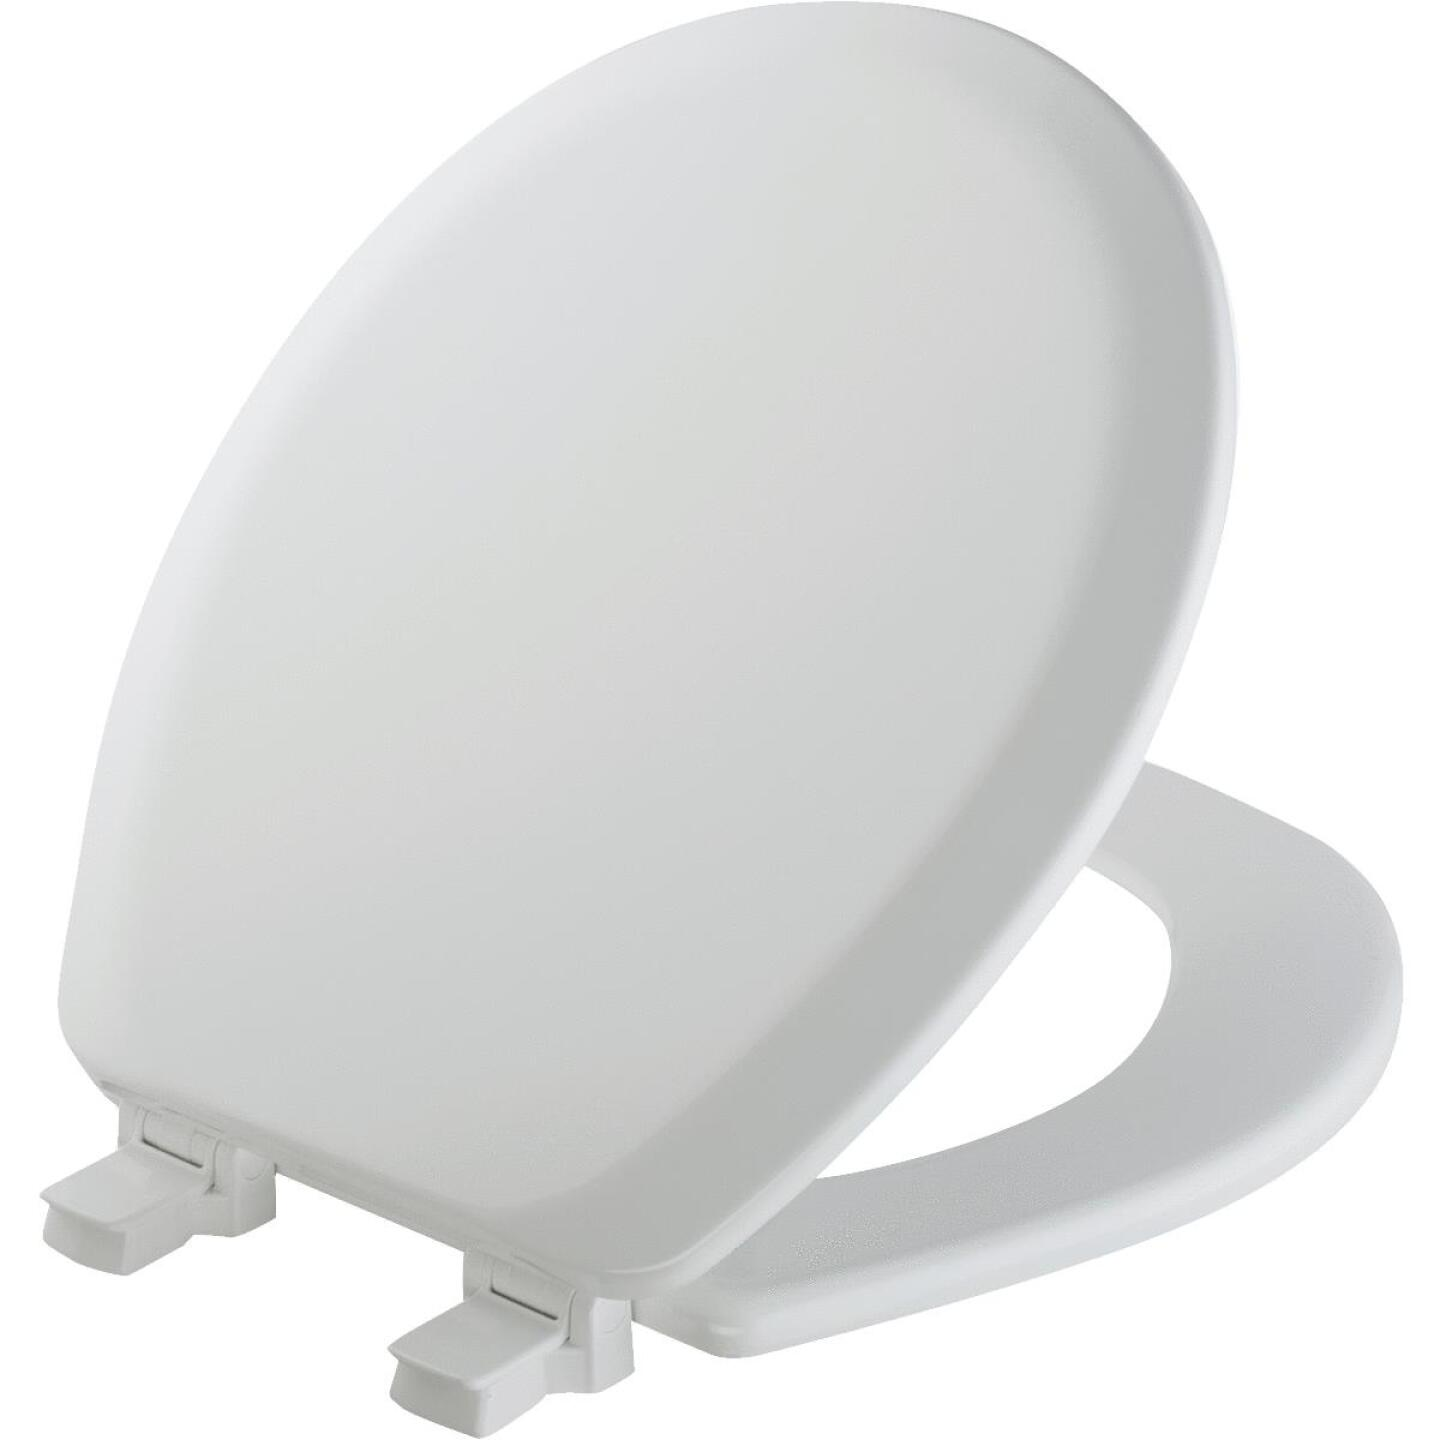 Mayfair Advantage Round Closed Front White Wood Toilet Seat Image 1